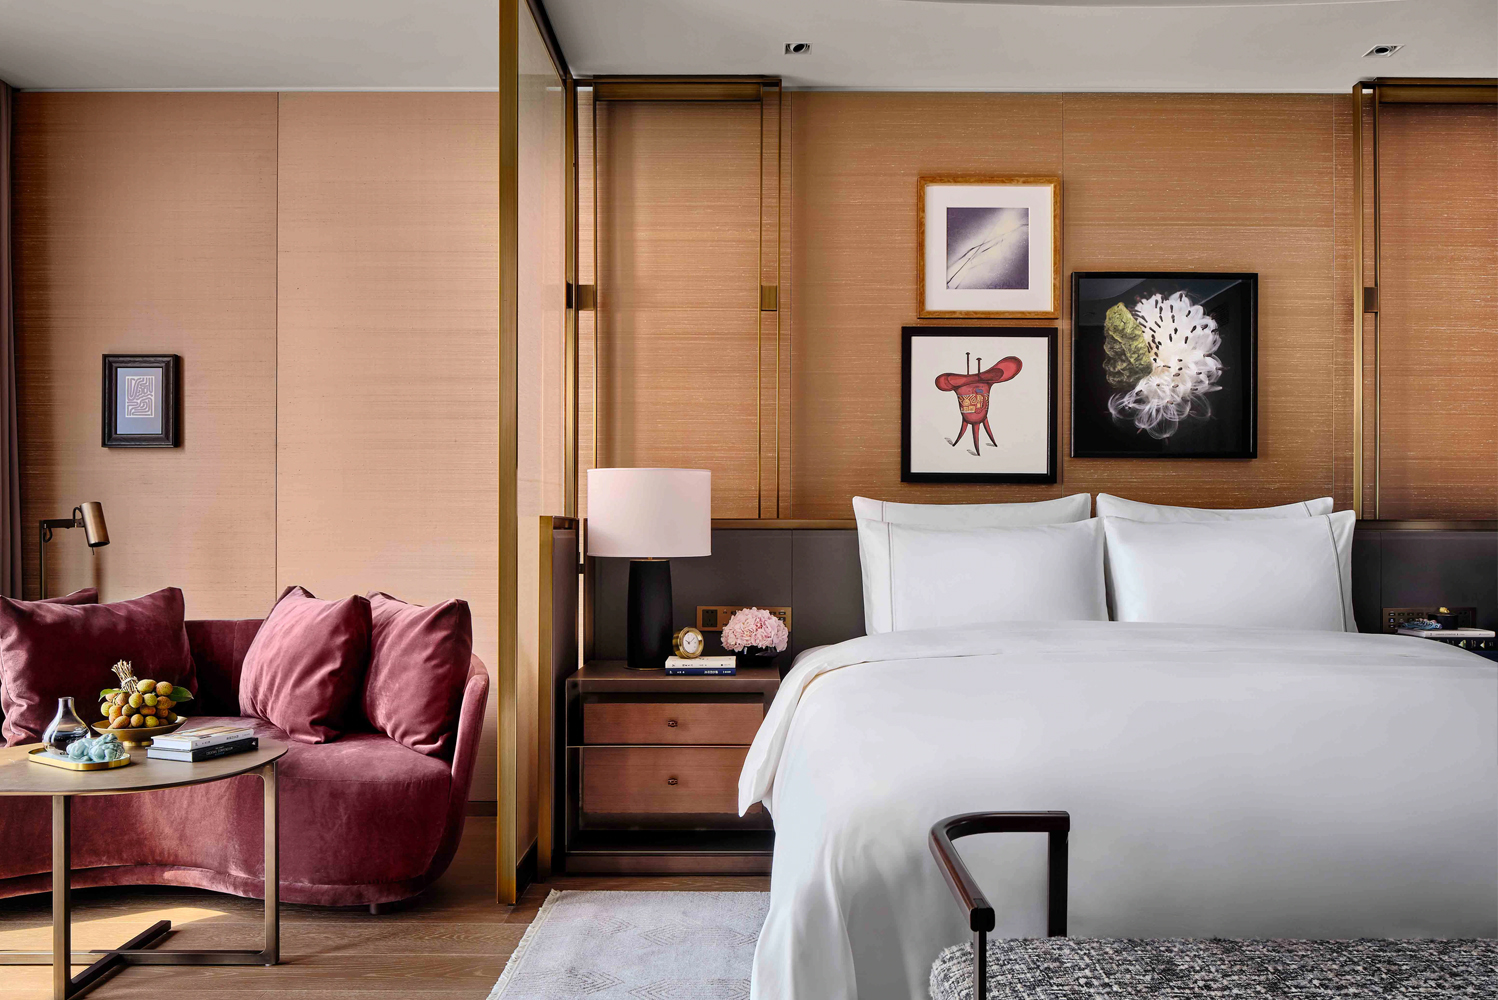 The second urban outpost for Rosewood Hotels & Resorts in mainland China opened as the tallest five-star hotel in the world.